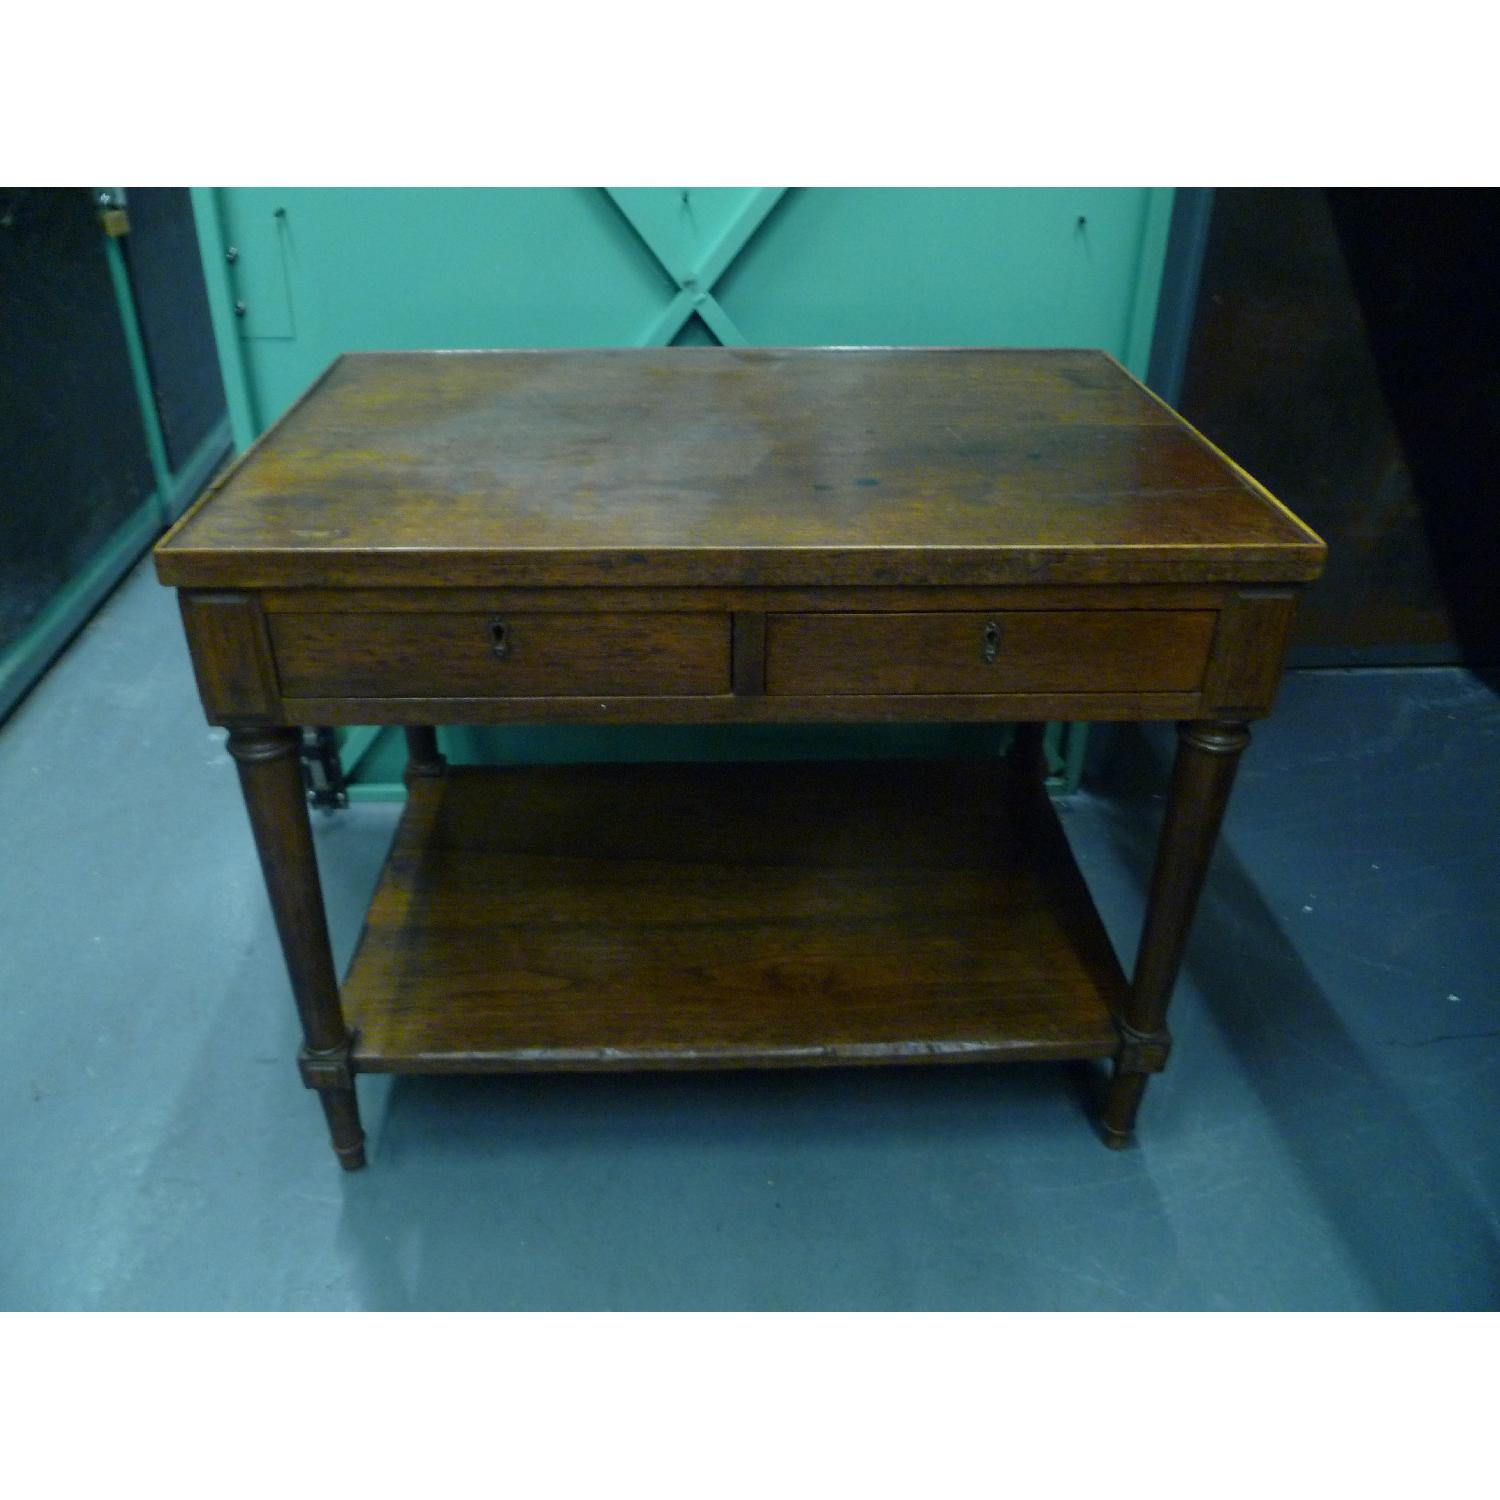 Early 20th Century French Directoire Style Mahogany Side Tables - 2 Available - image-1